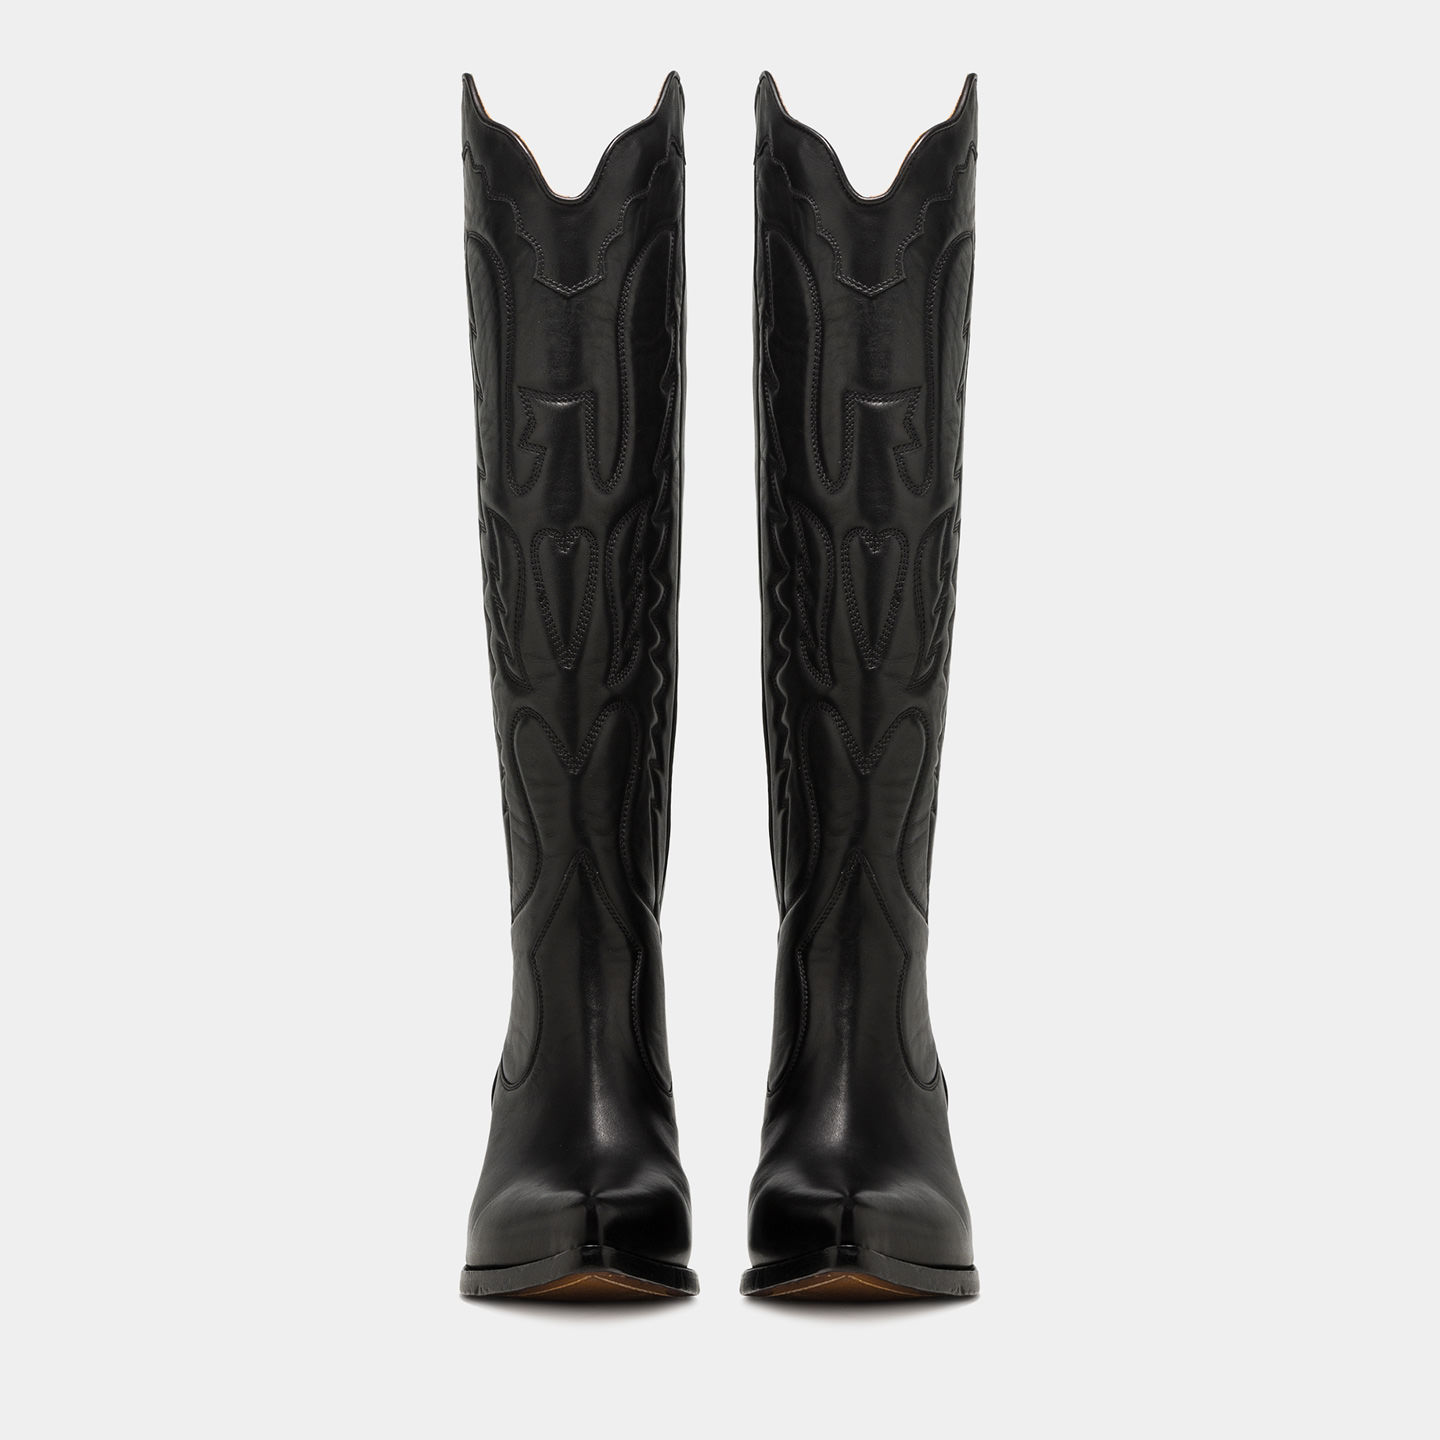 ELISE HIGH TOP BOOTS IN BLACK LEATHER